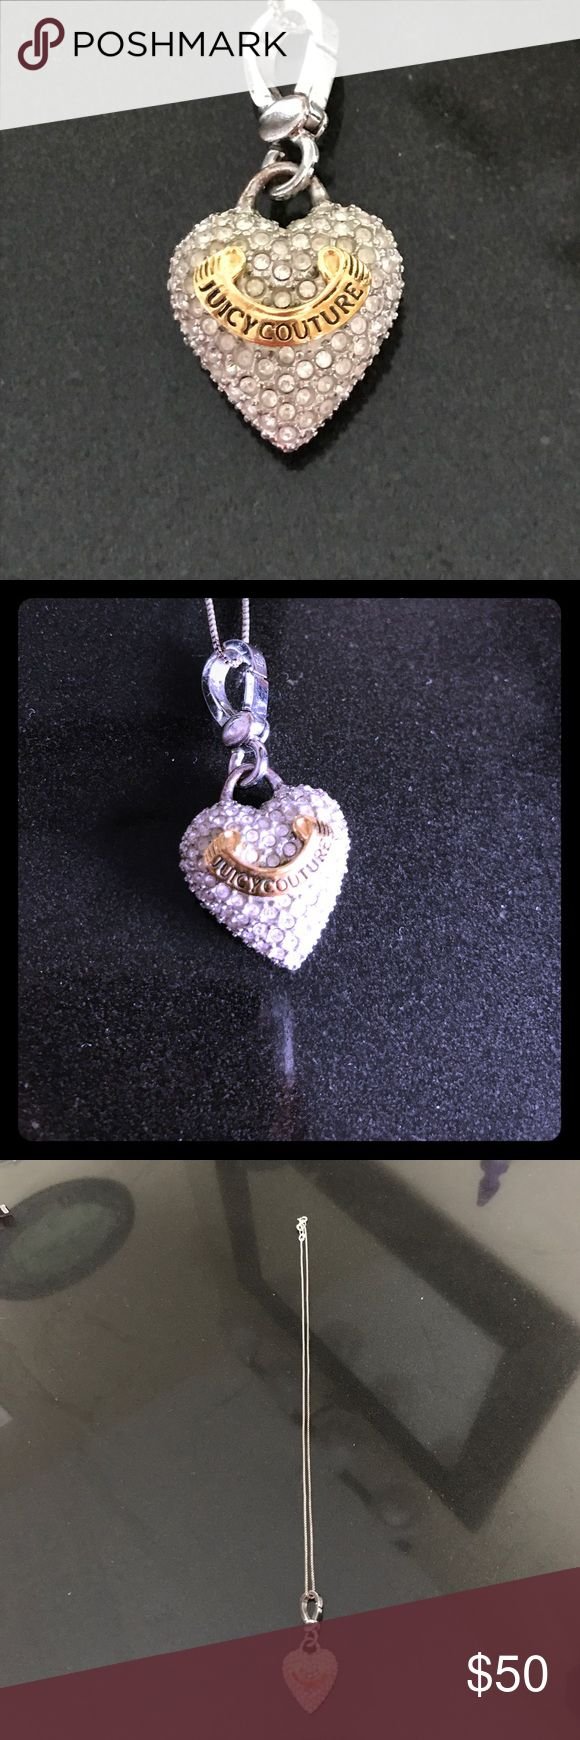 Juicy couture heart necklace Juicy couture necklace. Jeweled heart with gold banner with juicy couture written on it. 50 for the chain and charm. 30 for just the charm. Juicy Couture Jewelry Necklaces